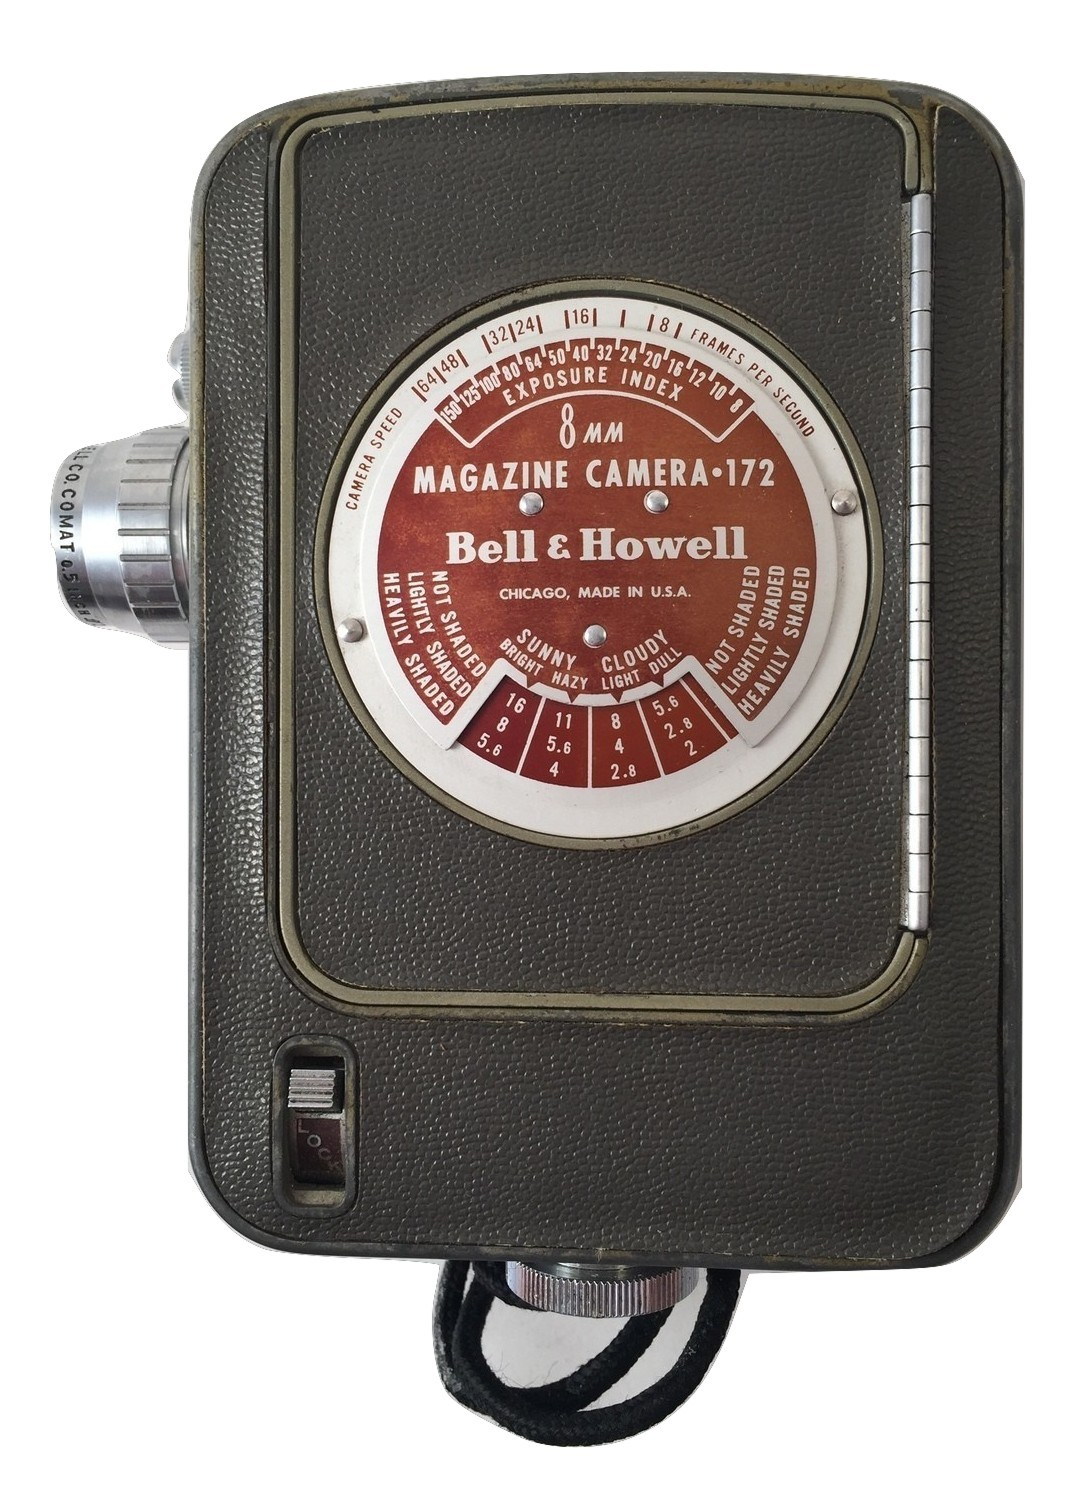 Vintage Bell & Howell 8MM Magazine Camera Model 172 (1947) & leather case